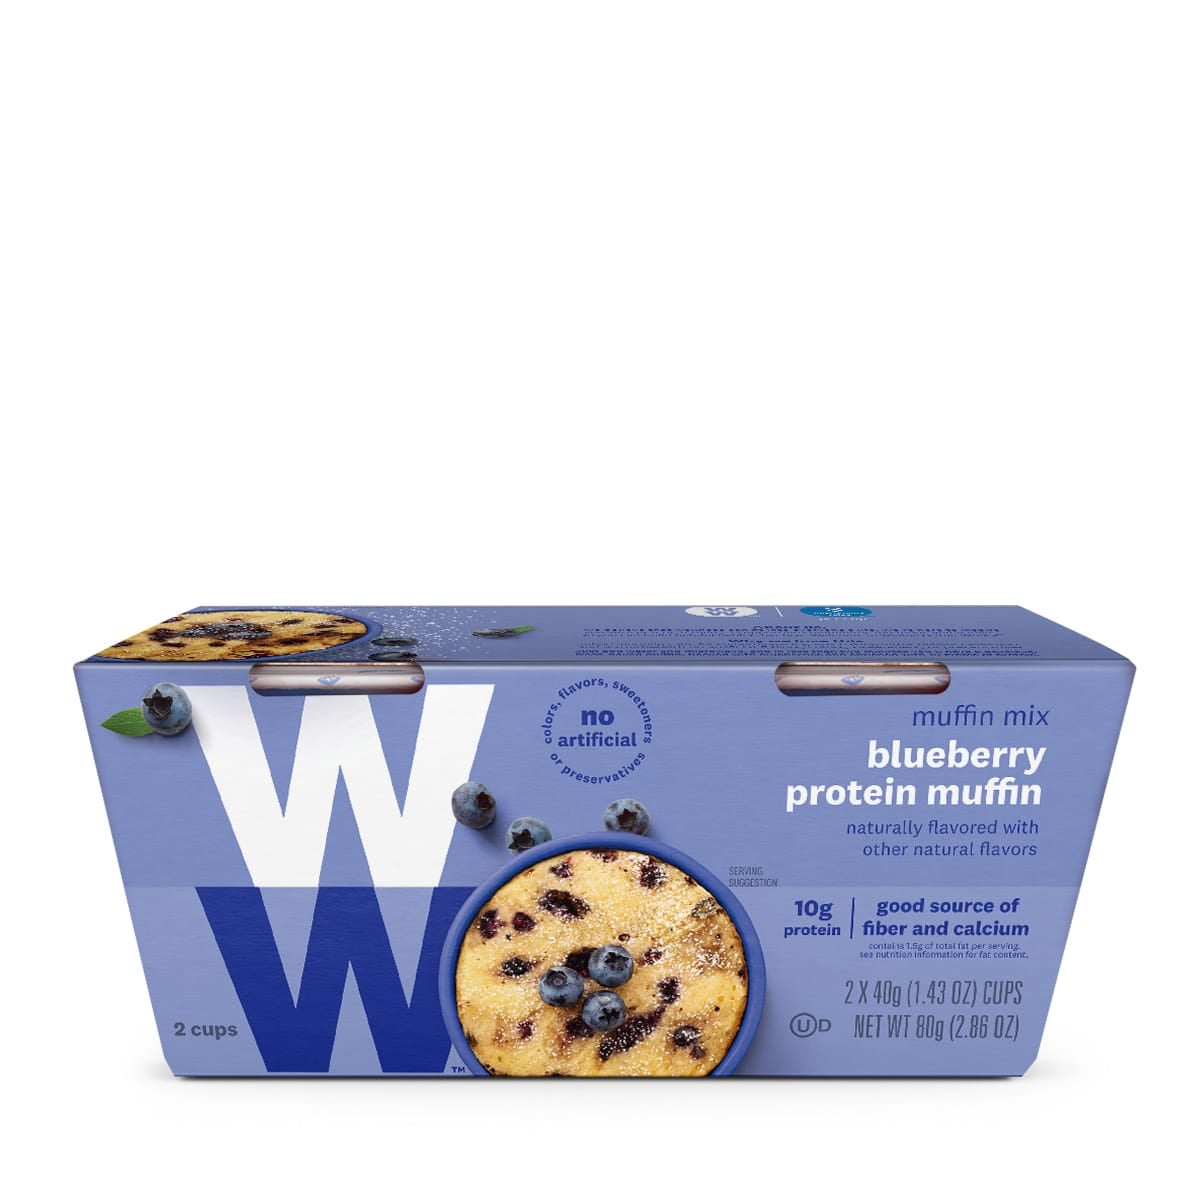 Blueberry Protein Muffin Mix, front of box, 2 cups per box, 10g of protein, good source of fiber and calcium